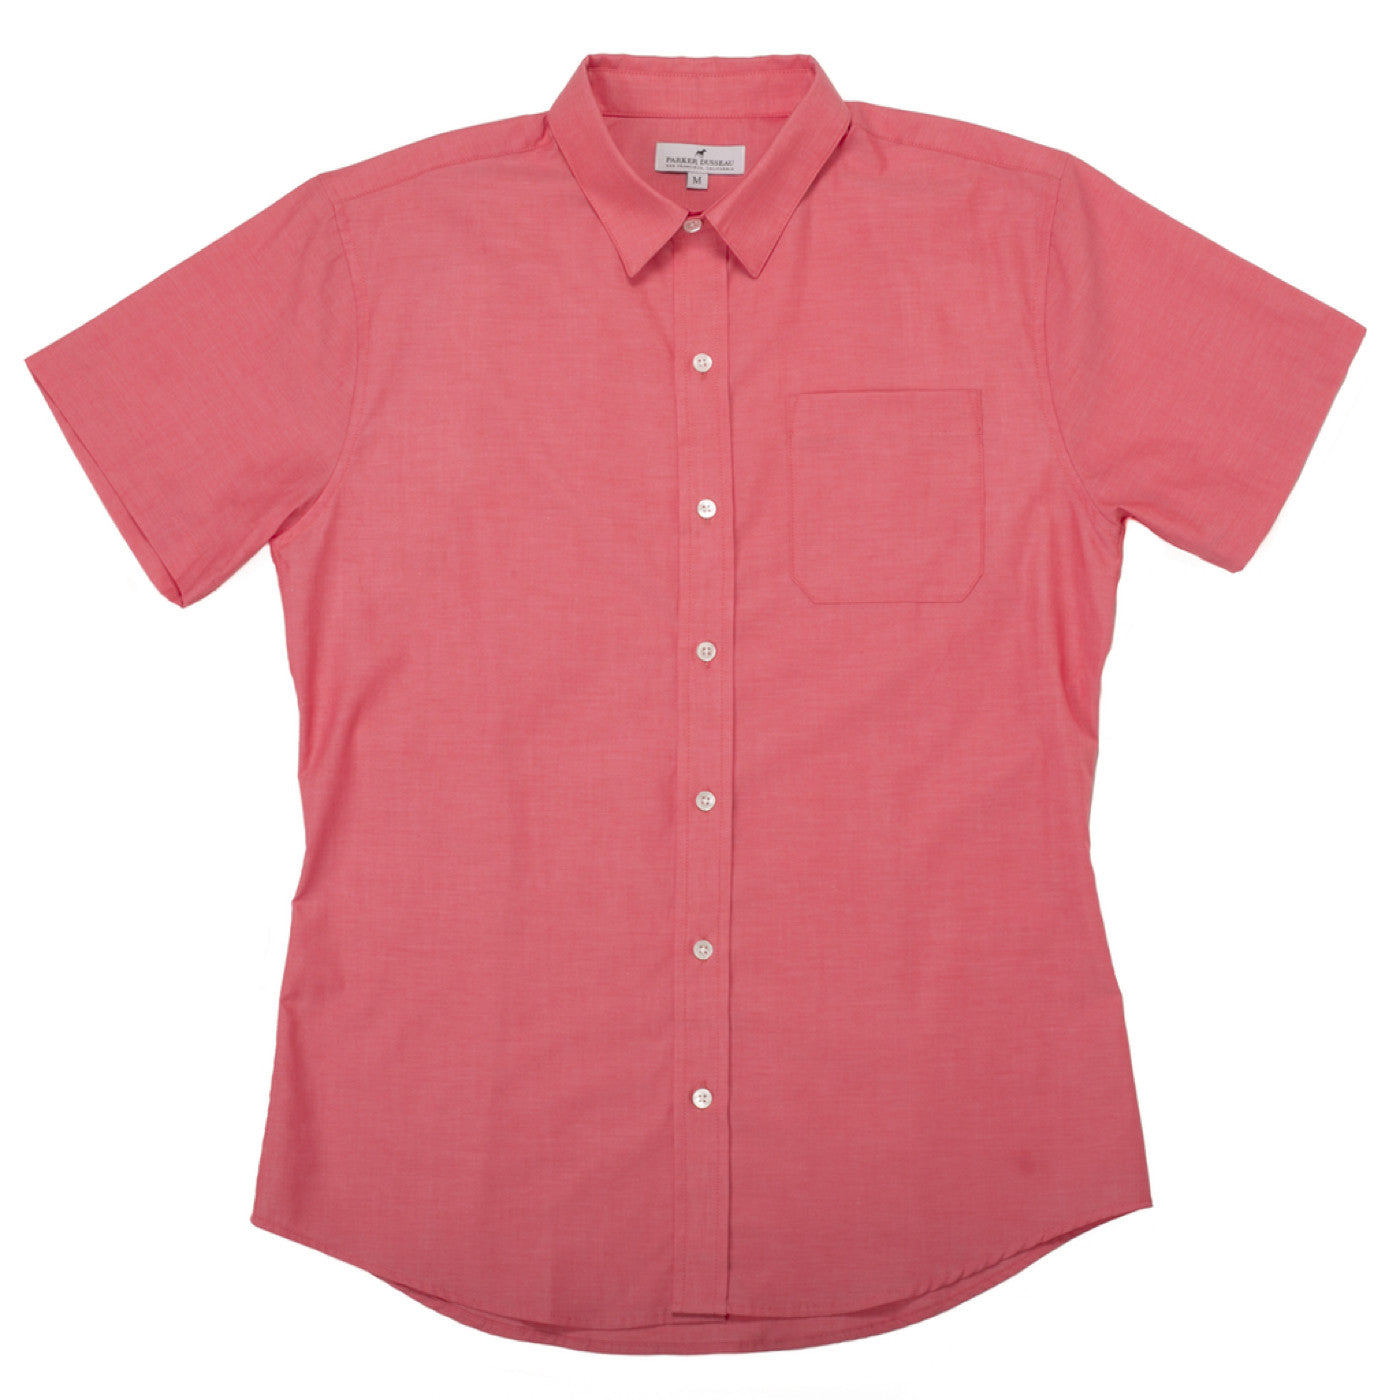 Short Sleeve Commuter Dress Shirt - Salmon Dress Shirt, Short Sleeve- Parker Dusseau : Functional Menswear Essentials for the Always Ready Lifestyle. Based in San Francisco, California